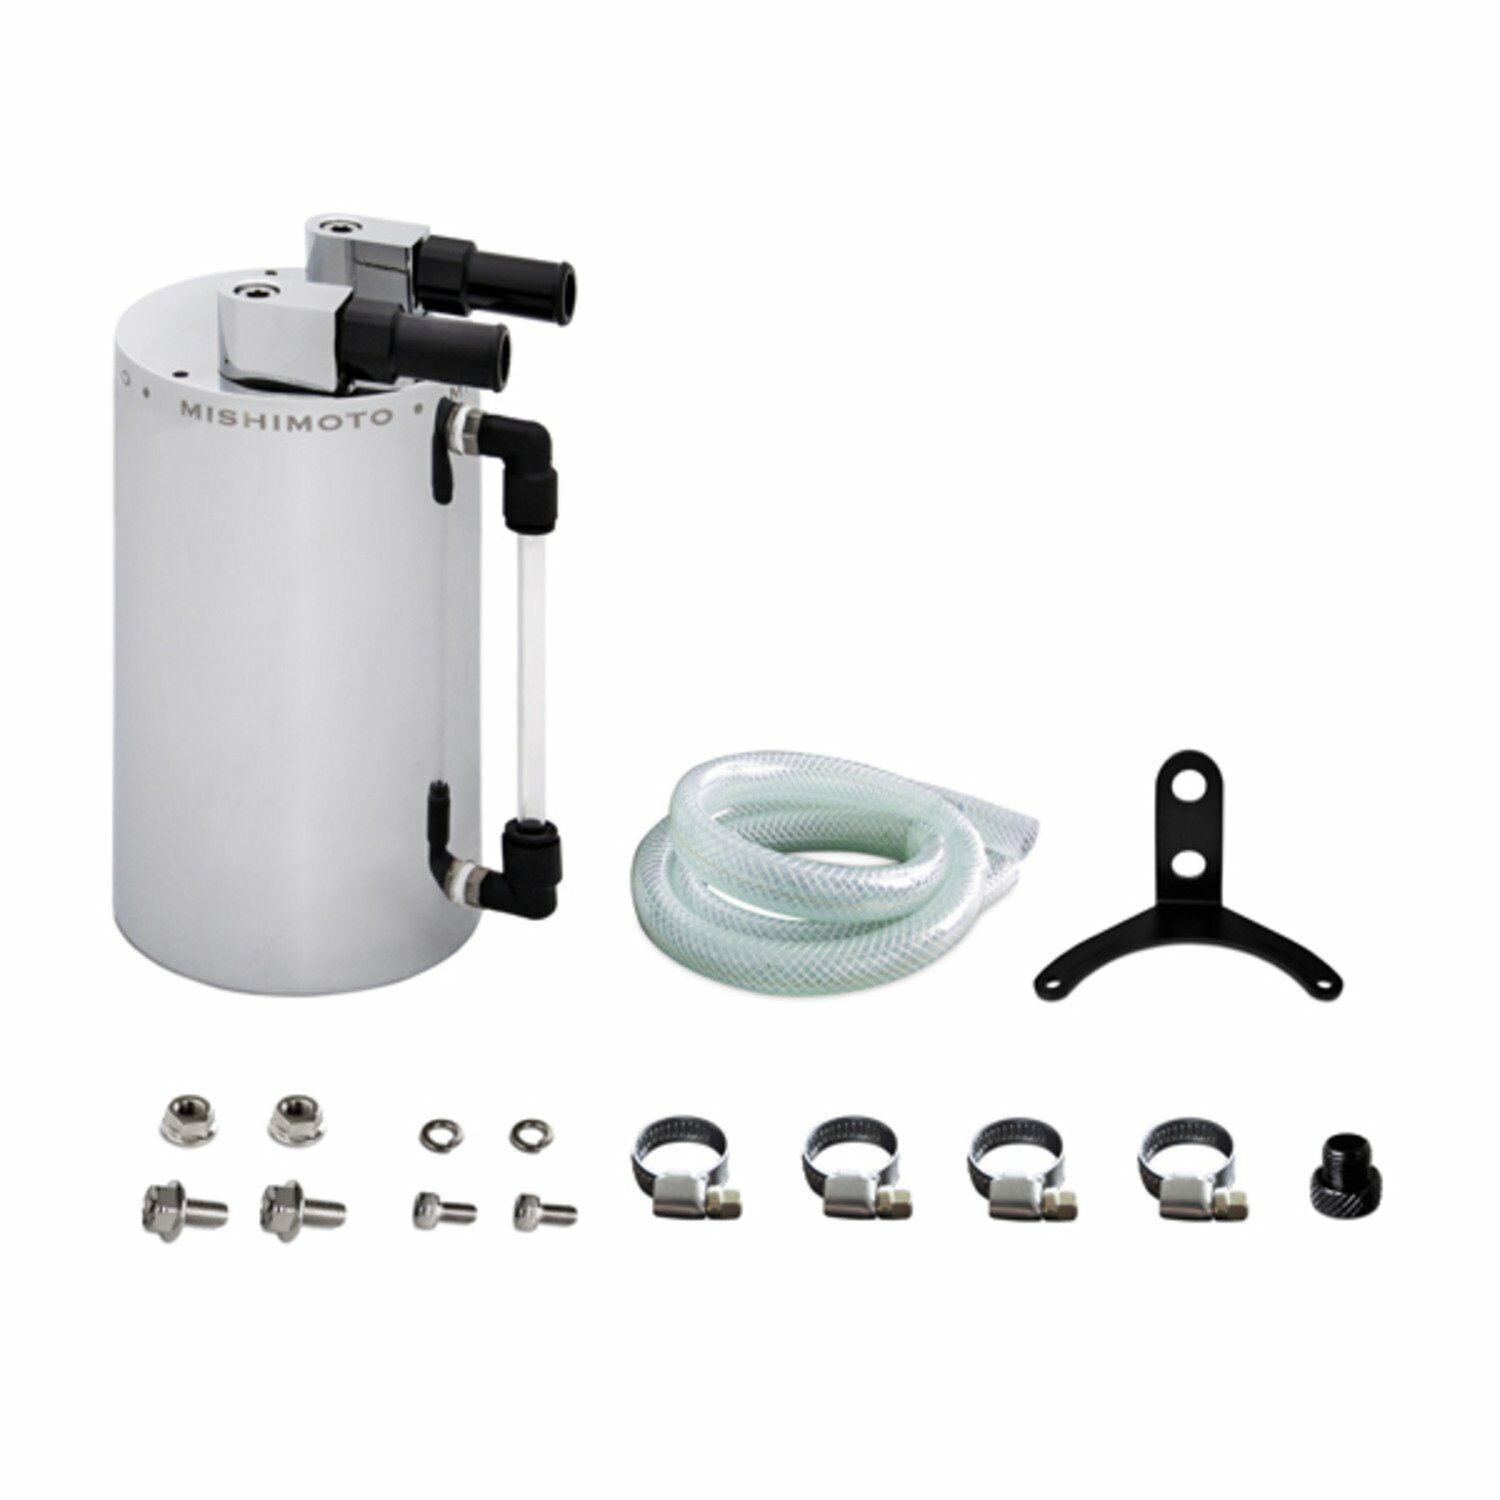 Mishimoto Universal Black Oil Catch Can Includes Hose and Hardware MMOCC-RB